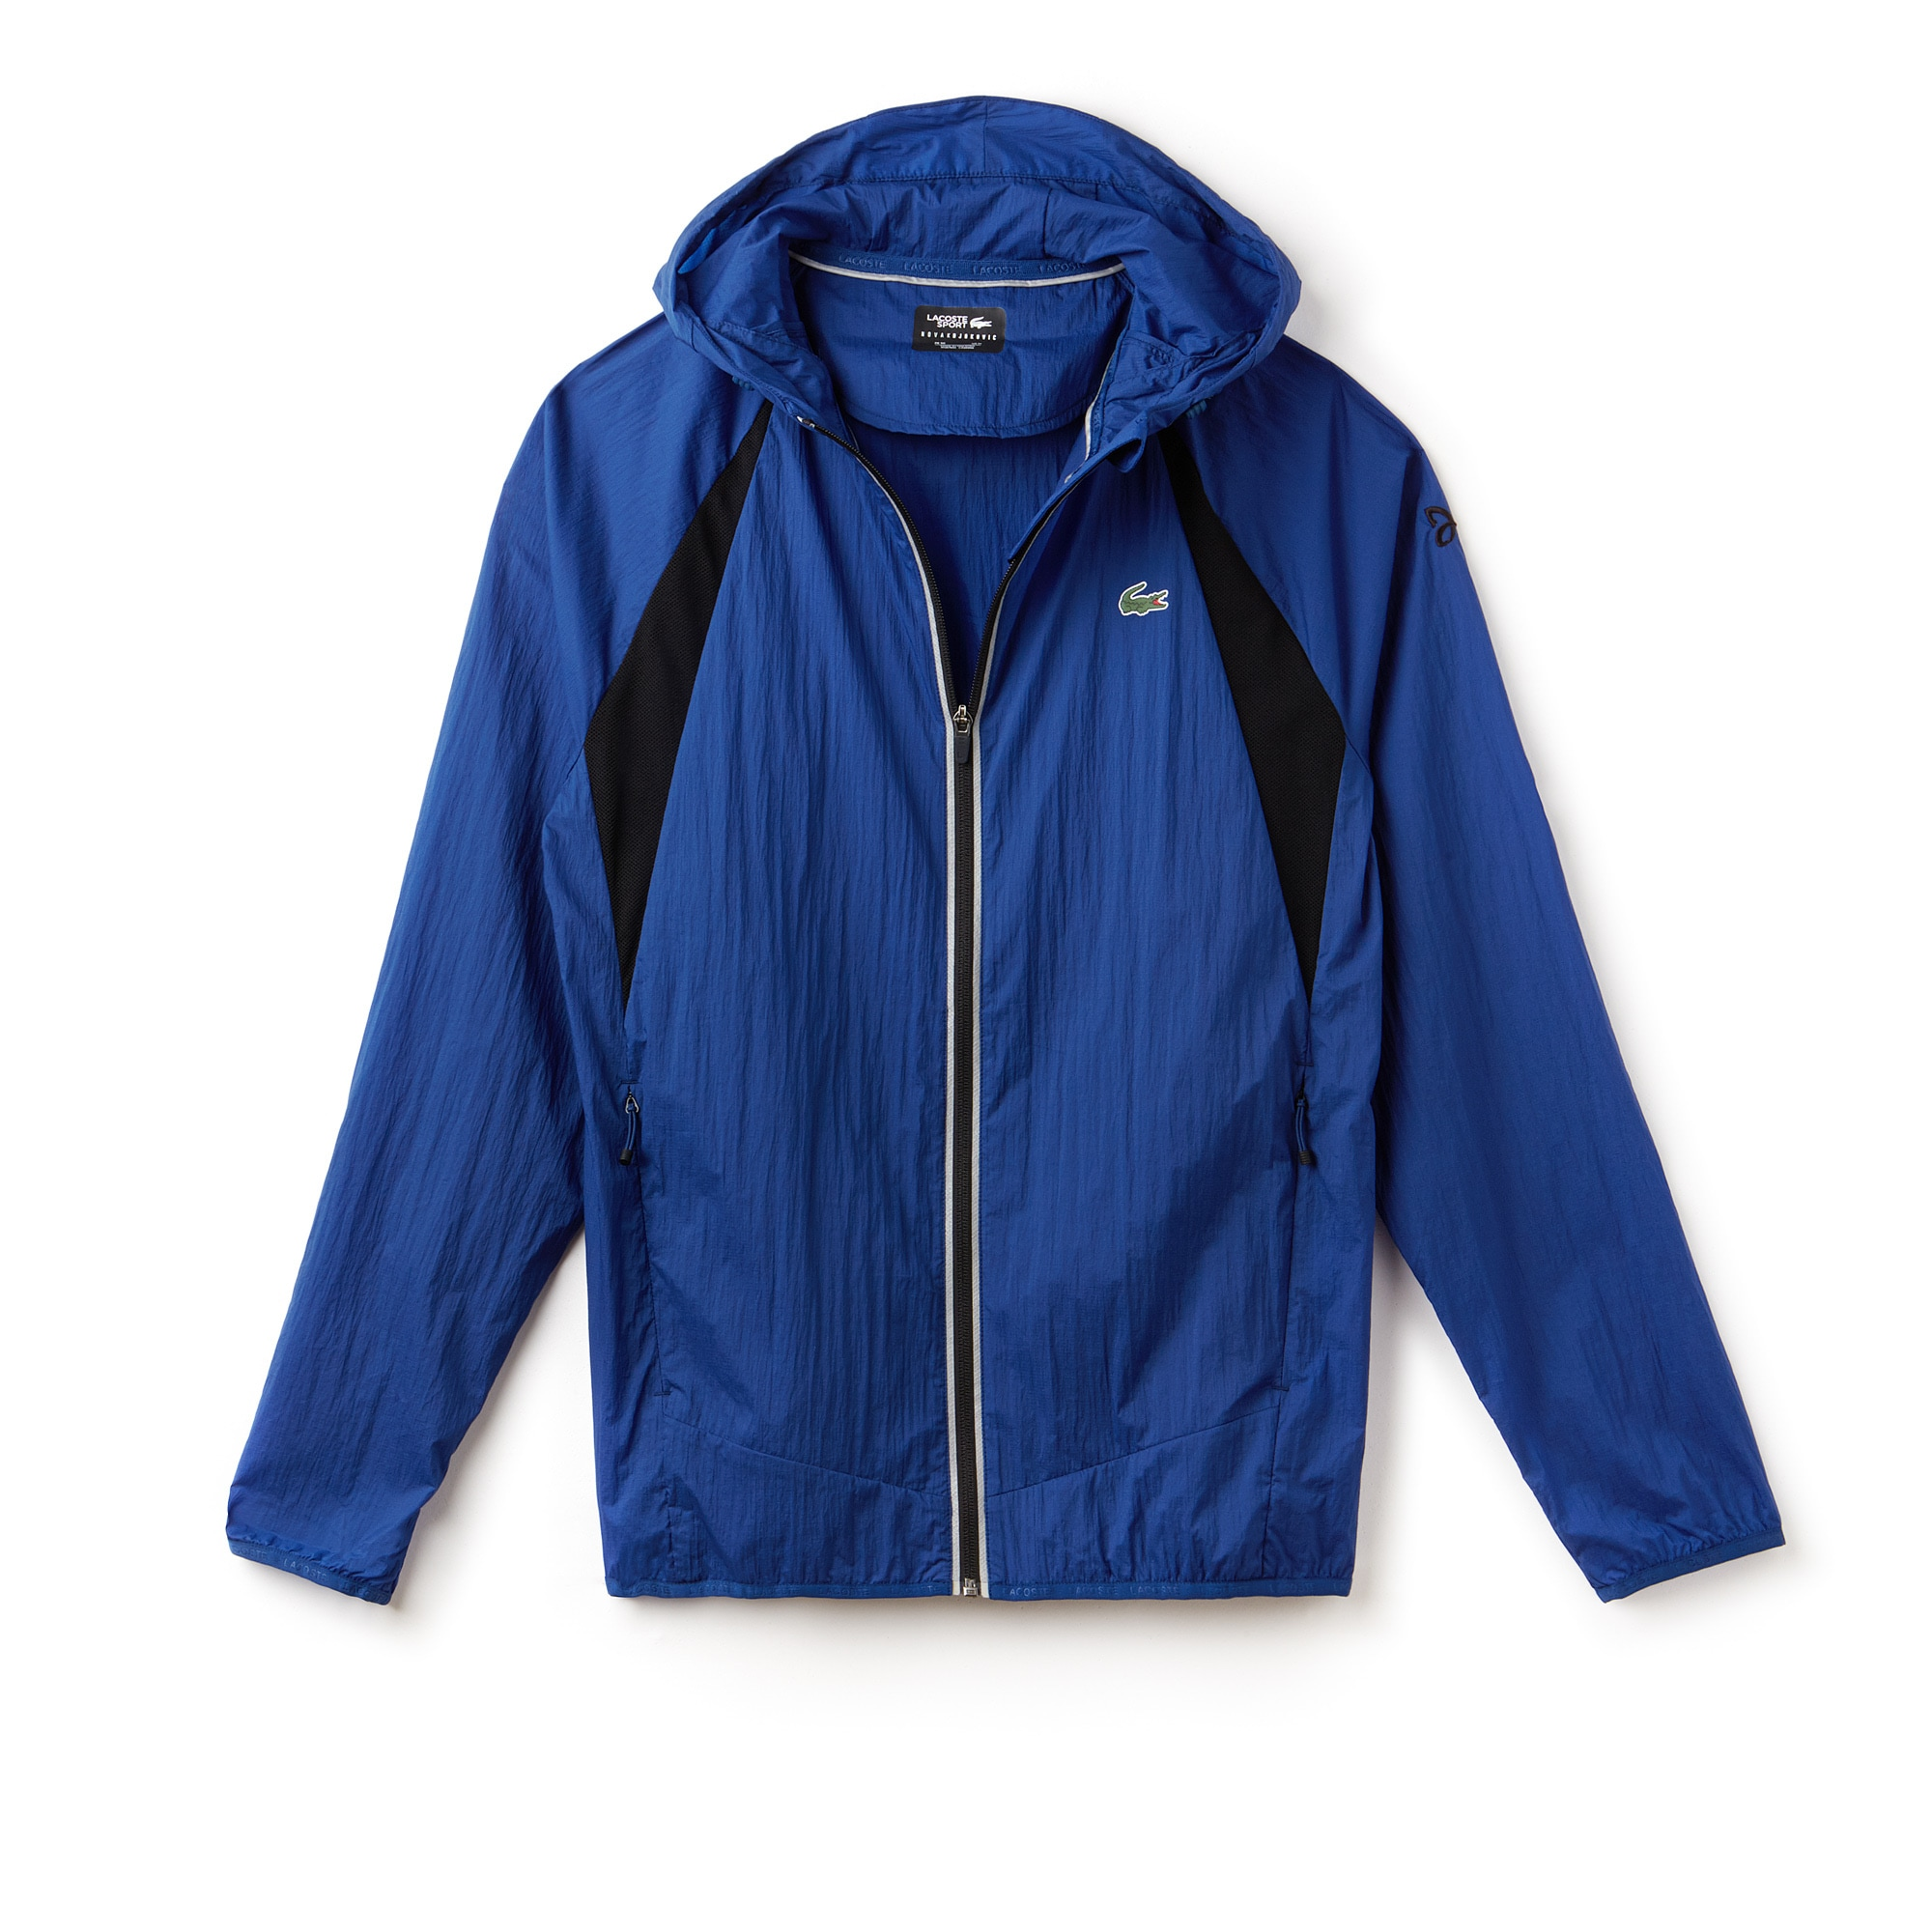 Men's Lacoste SPORT NOVAK DJOKOVIC SUPPORT WITH STYLE COLLECTION Hooded Mesh Panel Technical Jacket